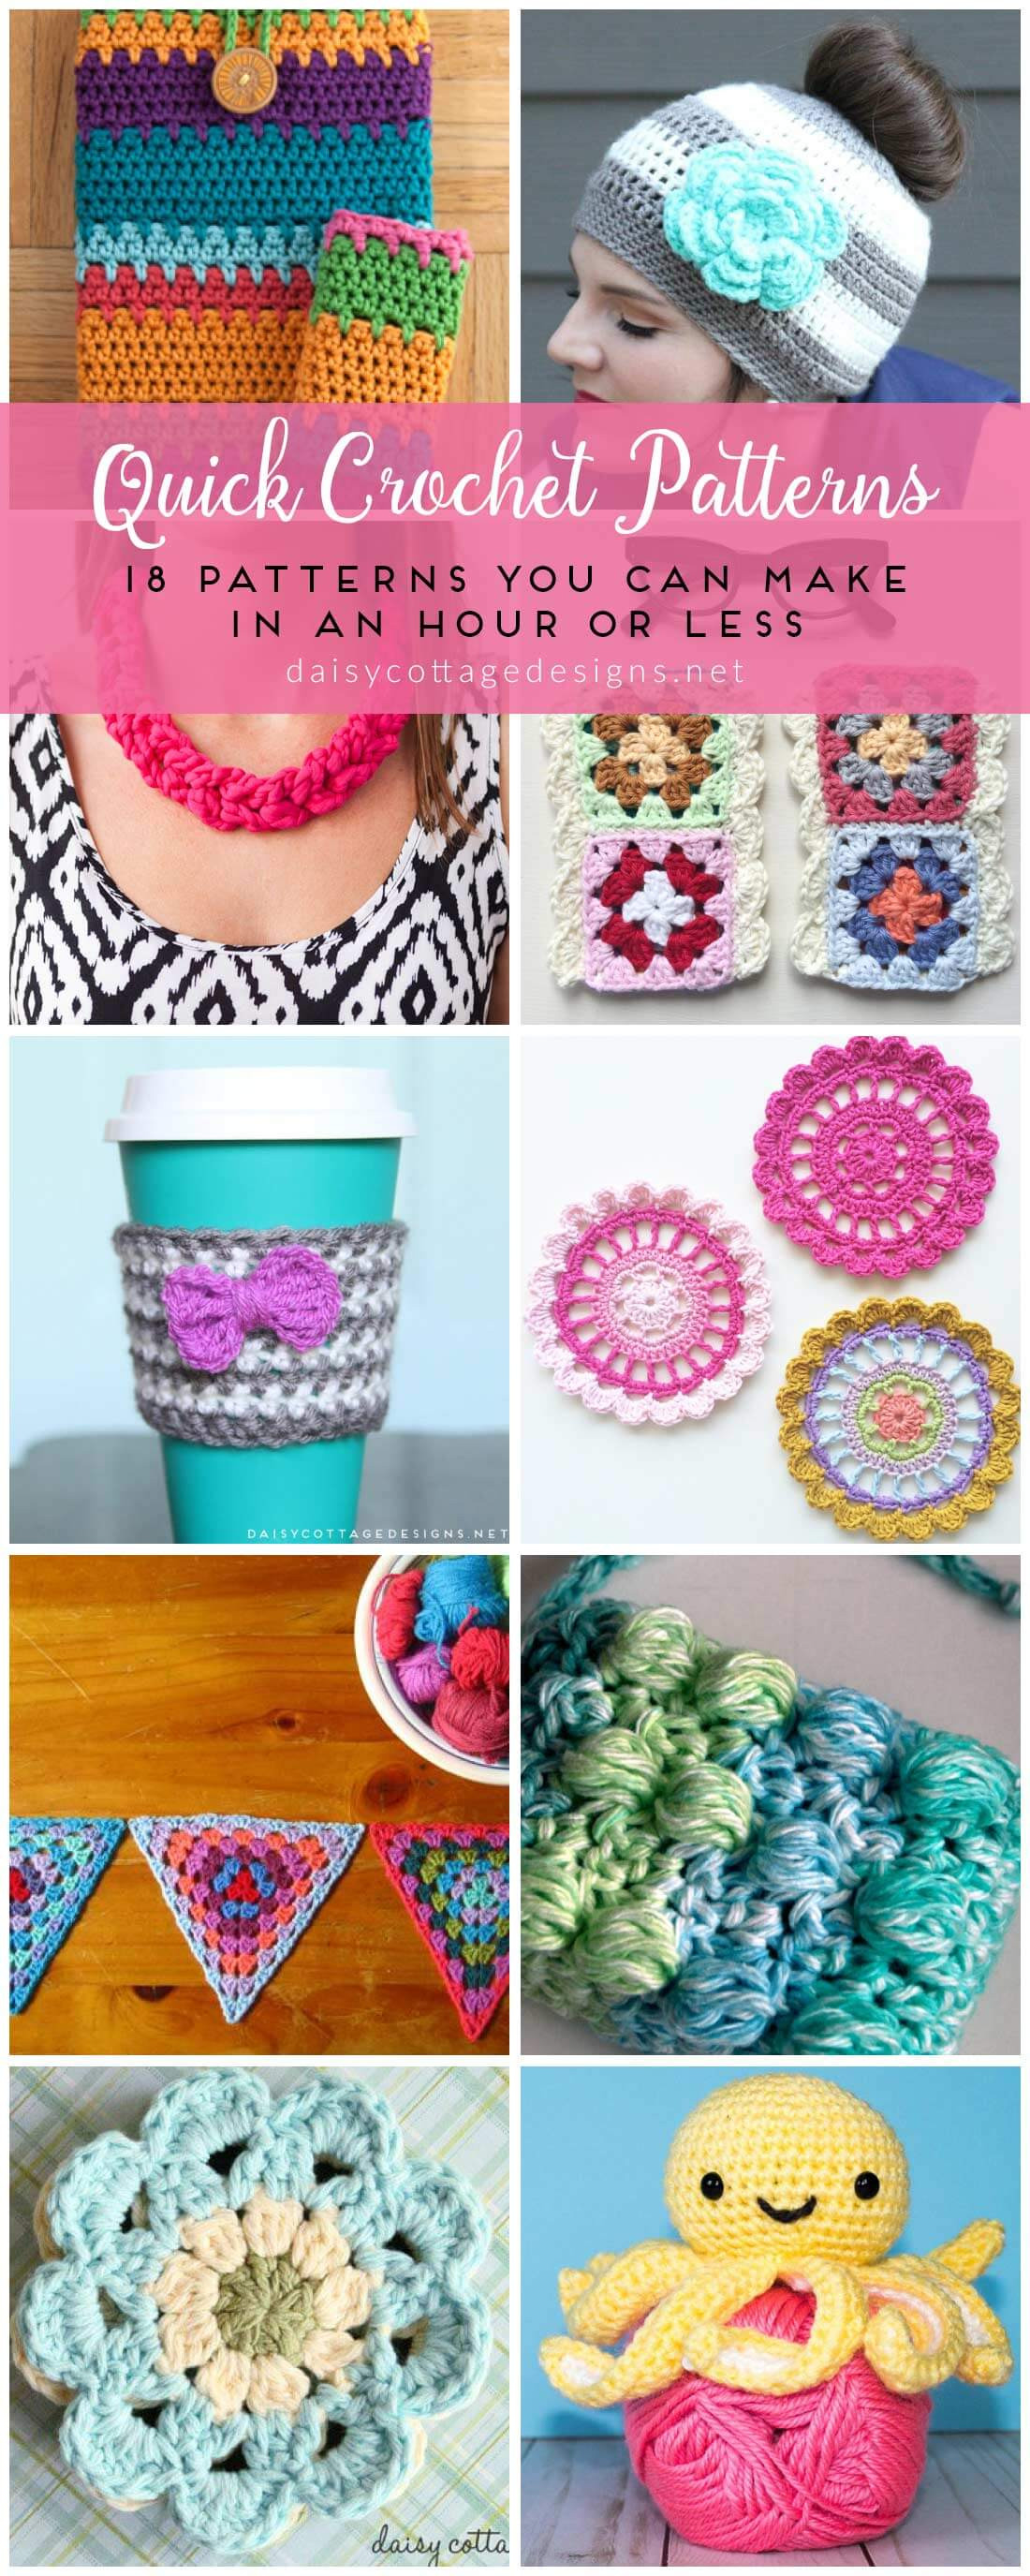 Best Of Easy Crochet Patterns Free Crochet Patterns On Daisy Easy Crochet Gifts Of Superb 42 Pictures Easy Crochet Gifts